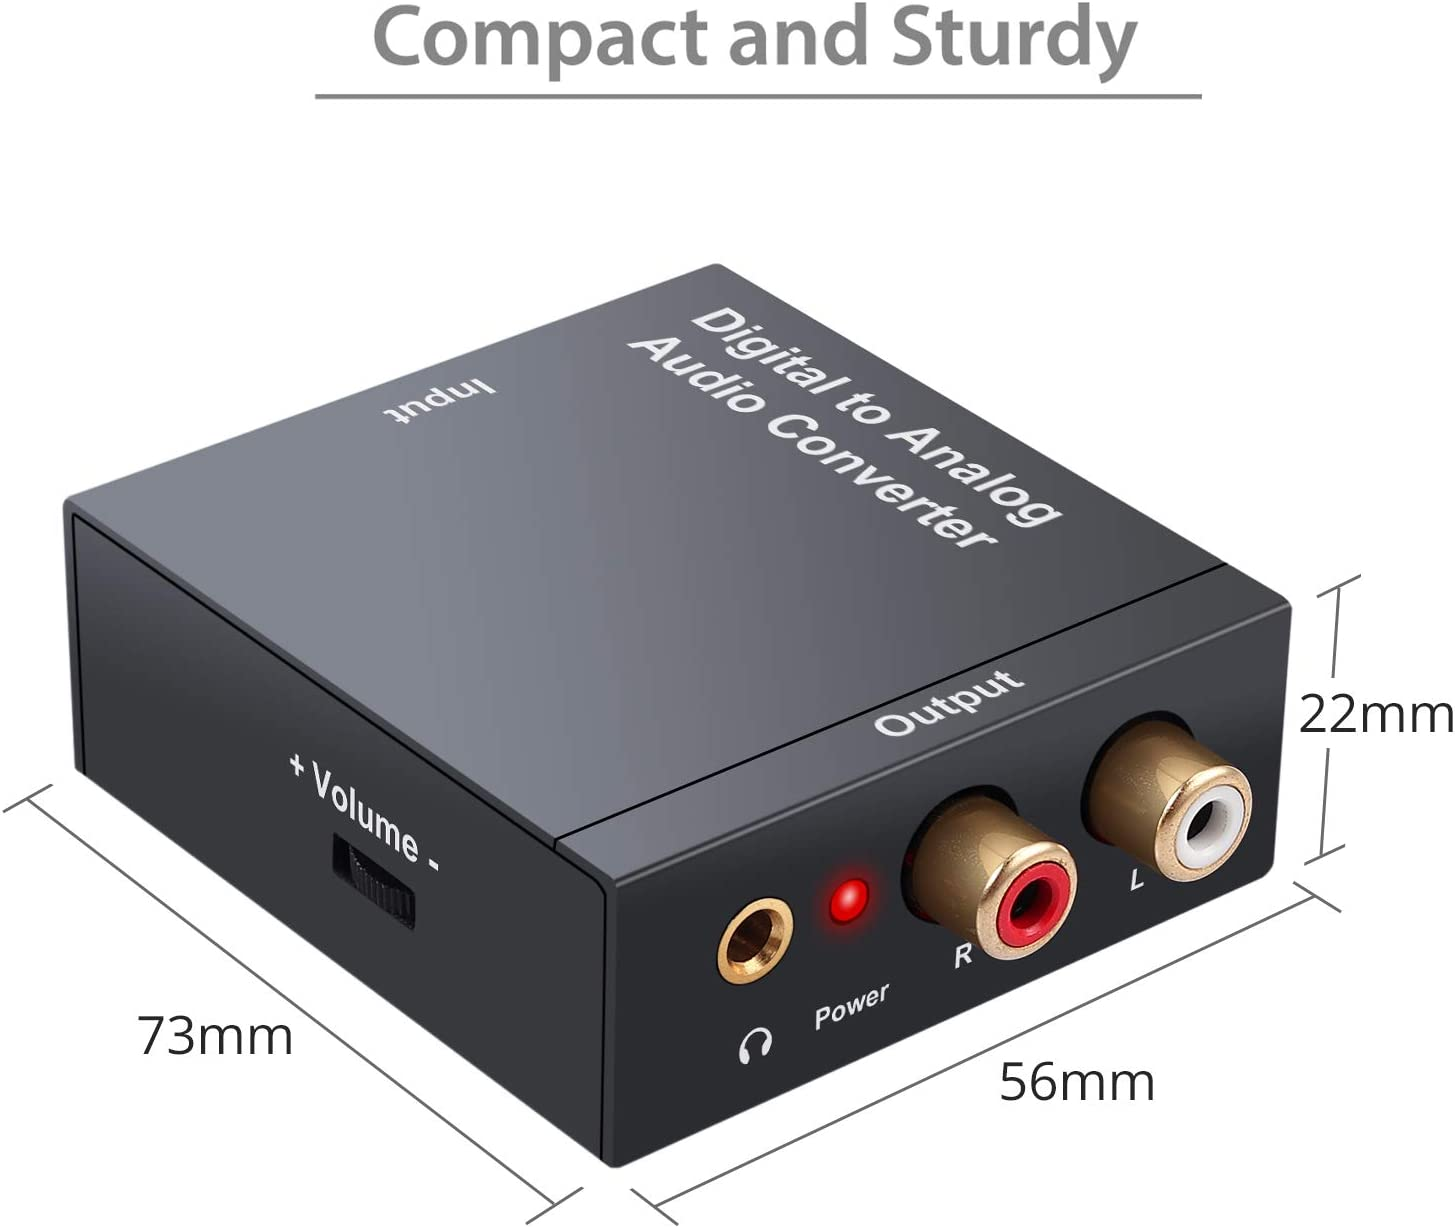 PROZOR 192kHz DAC Converter with Volume Control 192kHz Digital to Analog Audio Converter Digital Coaxial Toslink to Analog Stereo L//R RCA 3.5mm Audio Adapter